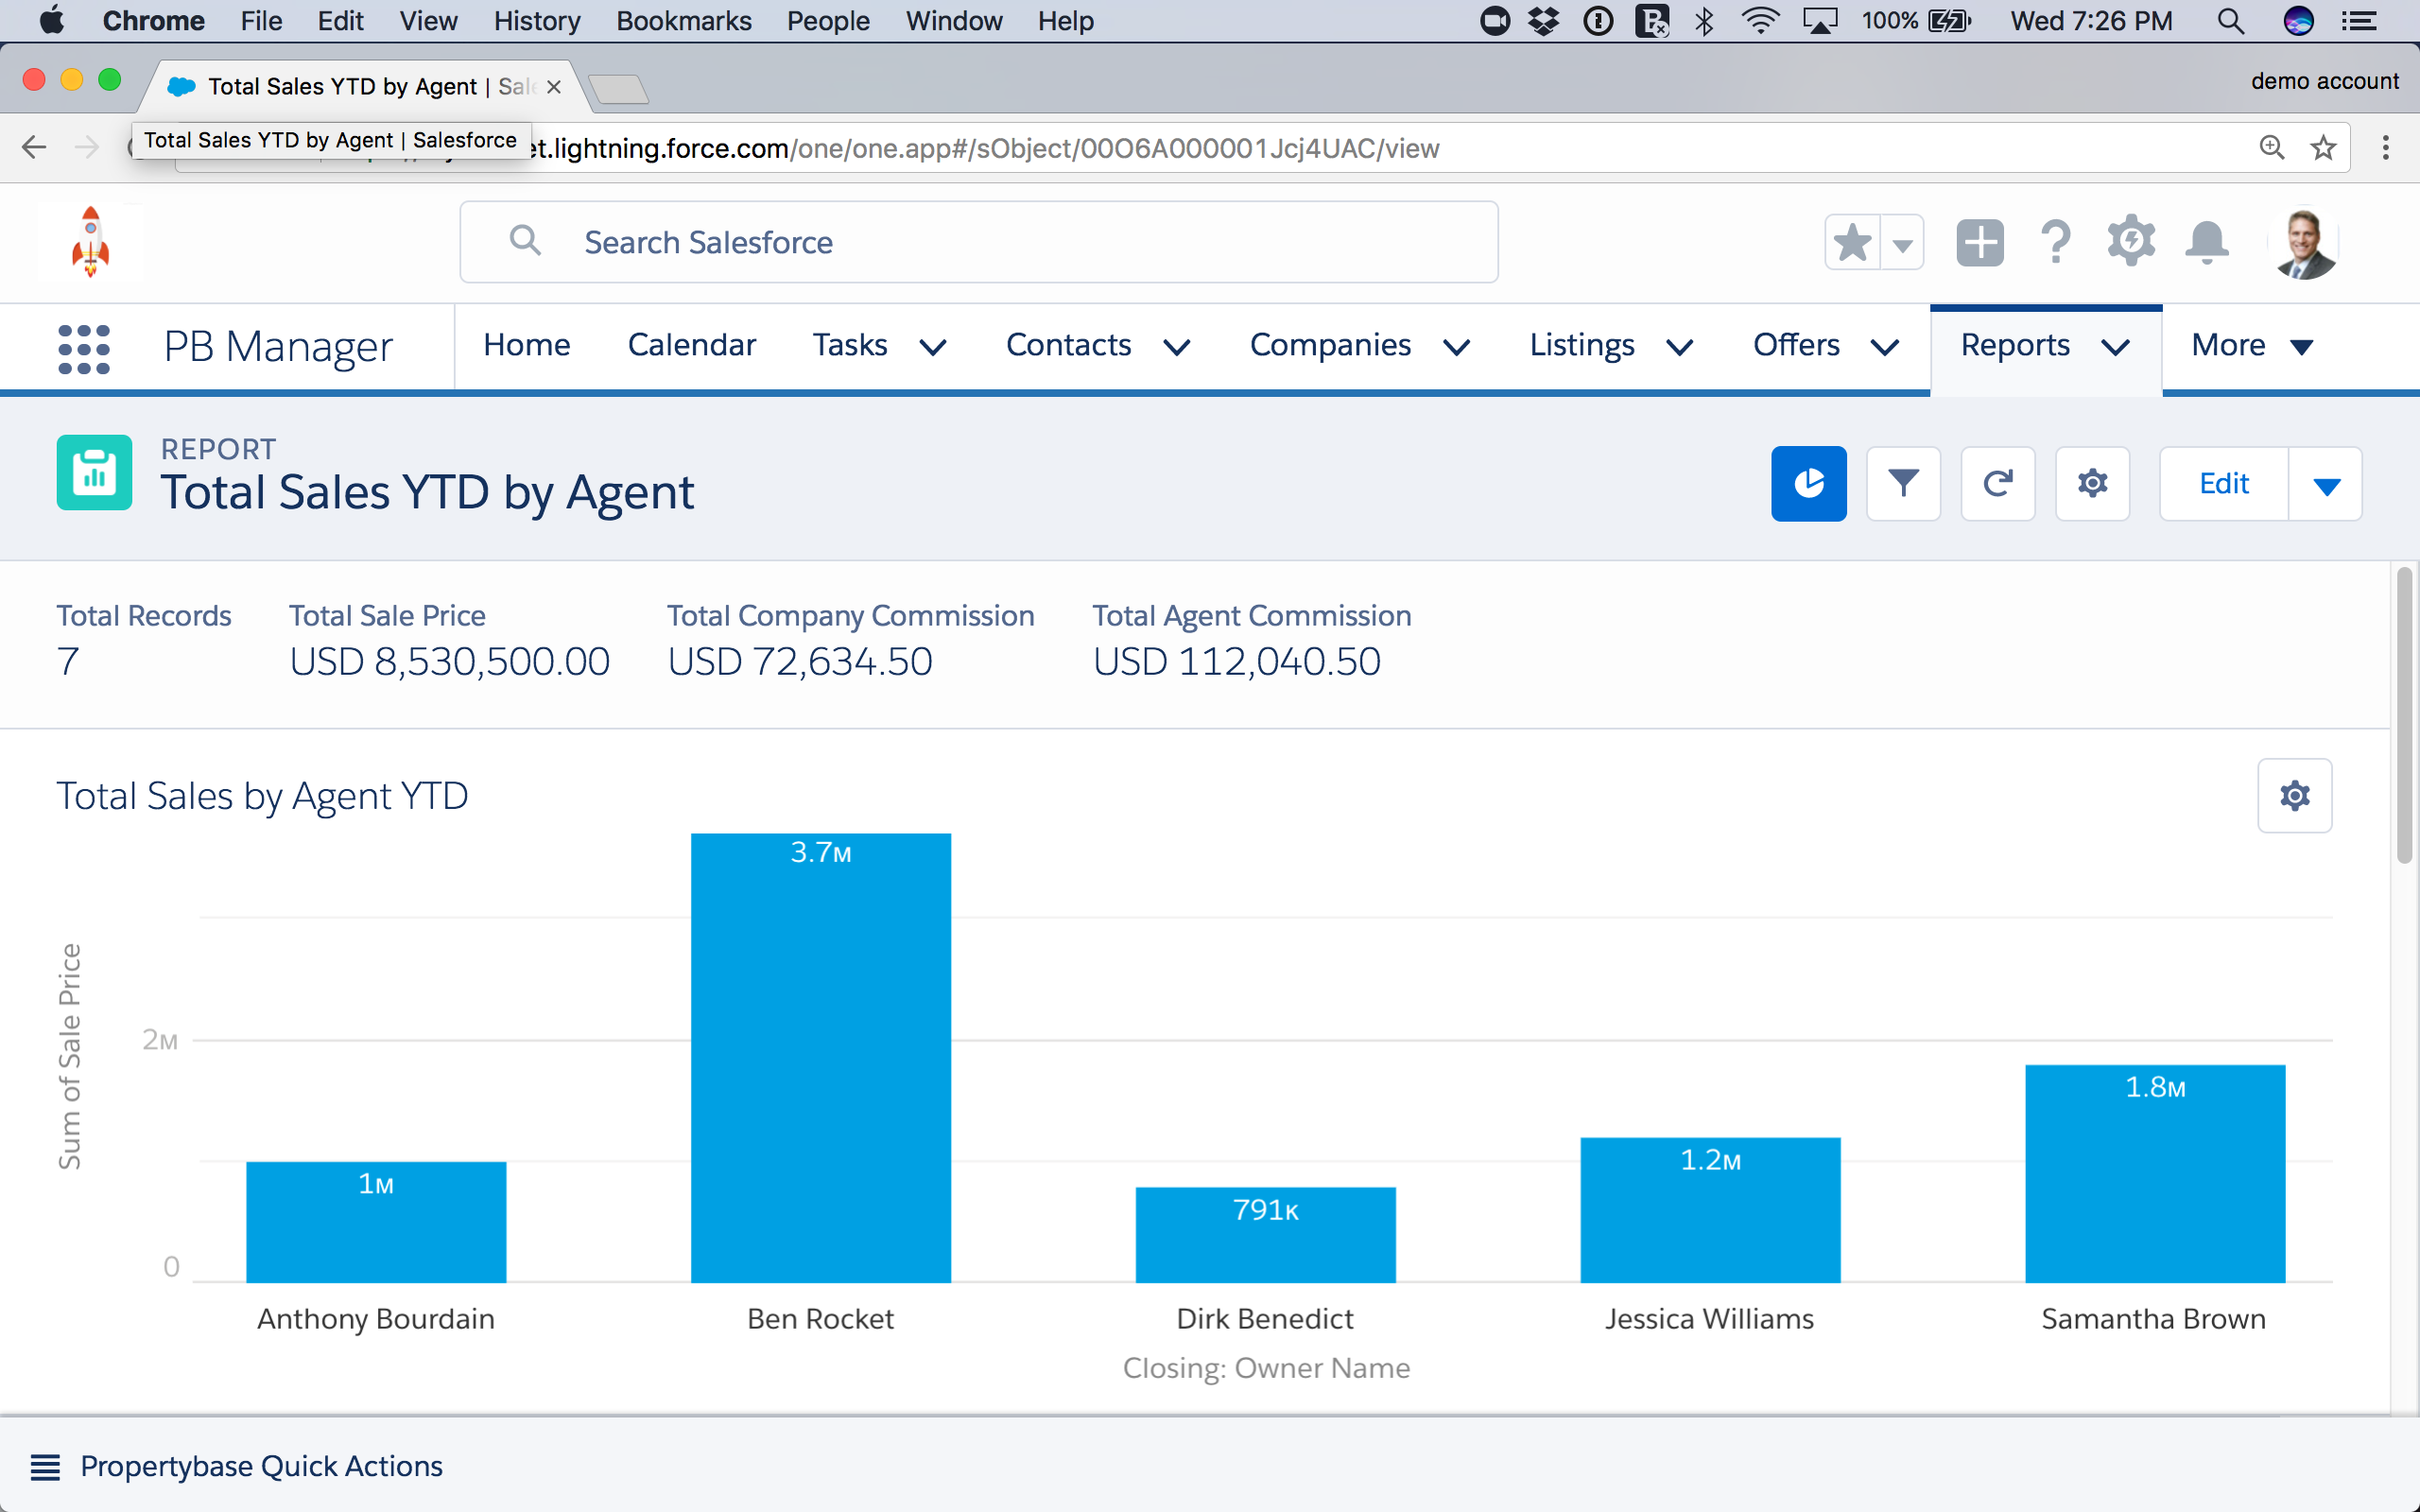 Propertybase Salesforce Edition Software - Reports